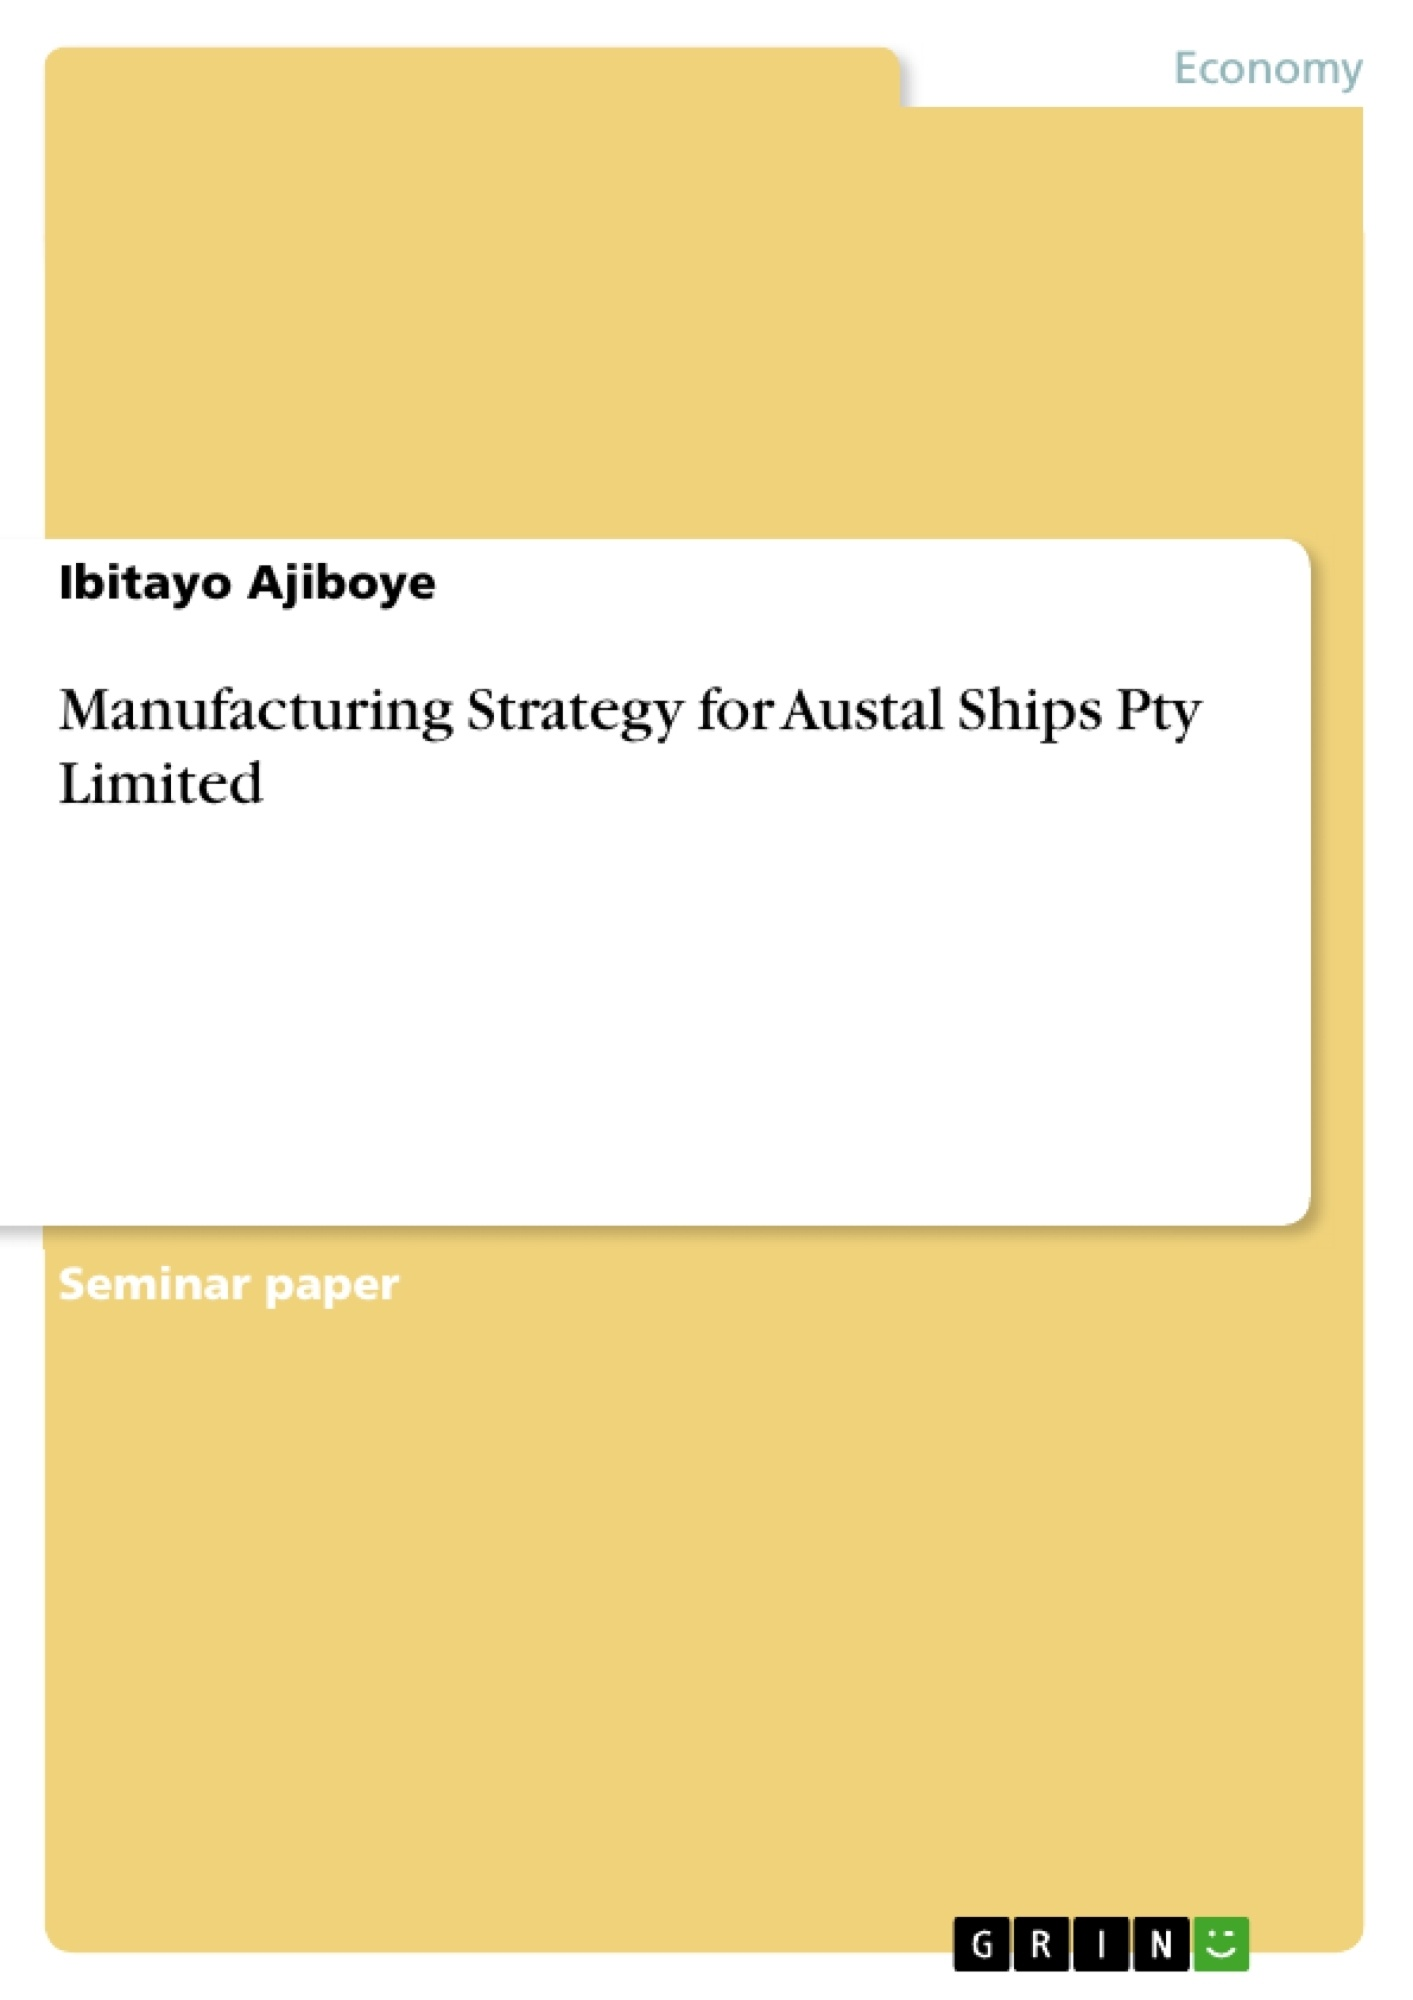 Title: Manufacturing Strategy for Austal Ships Pty Limited